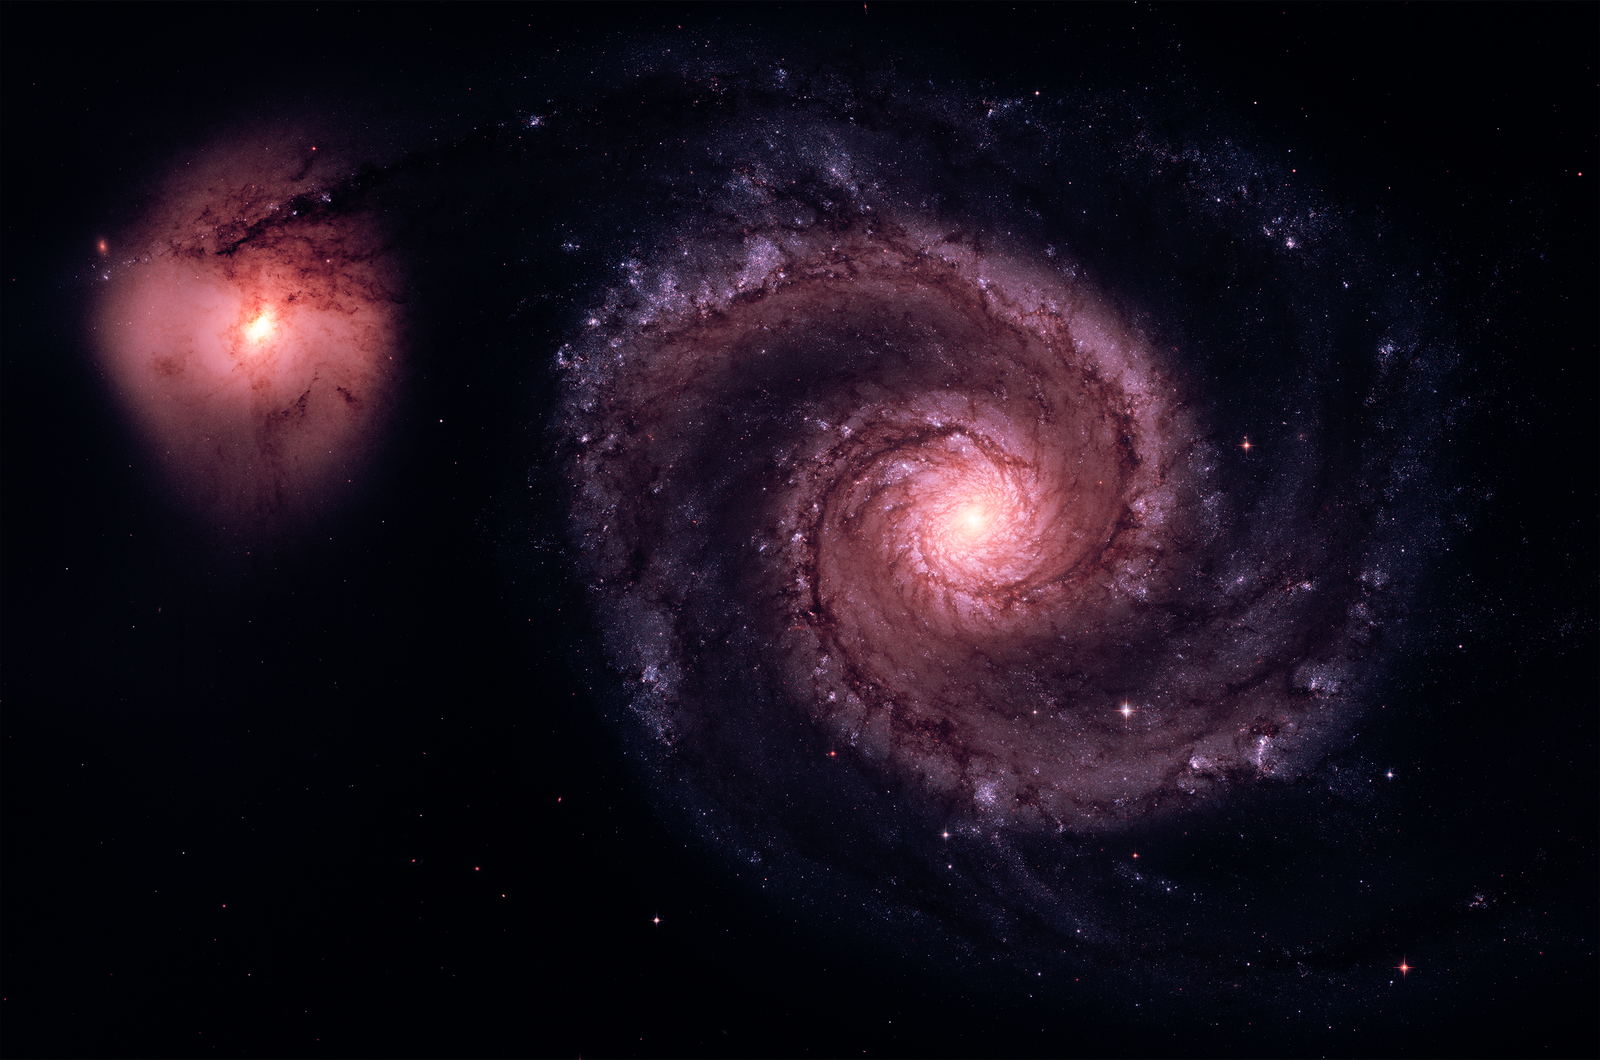 M51 - The Whirlpool Galaxy [Real Space] by omniomi